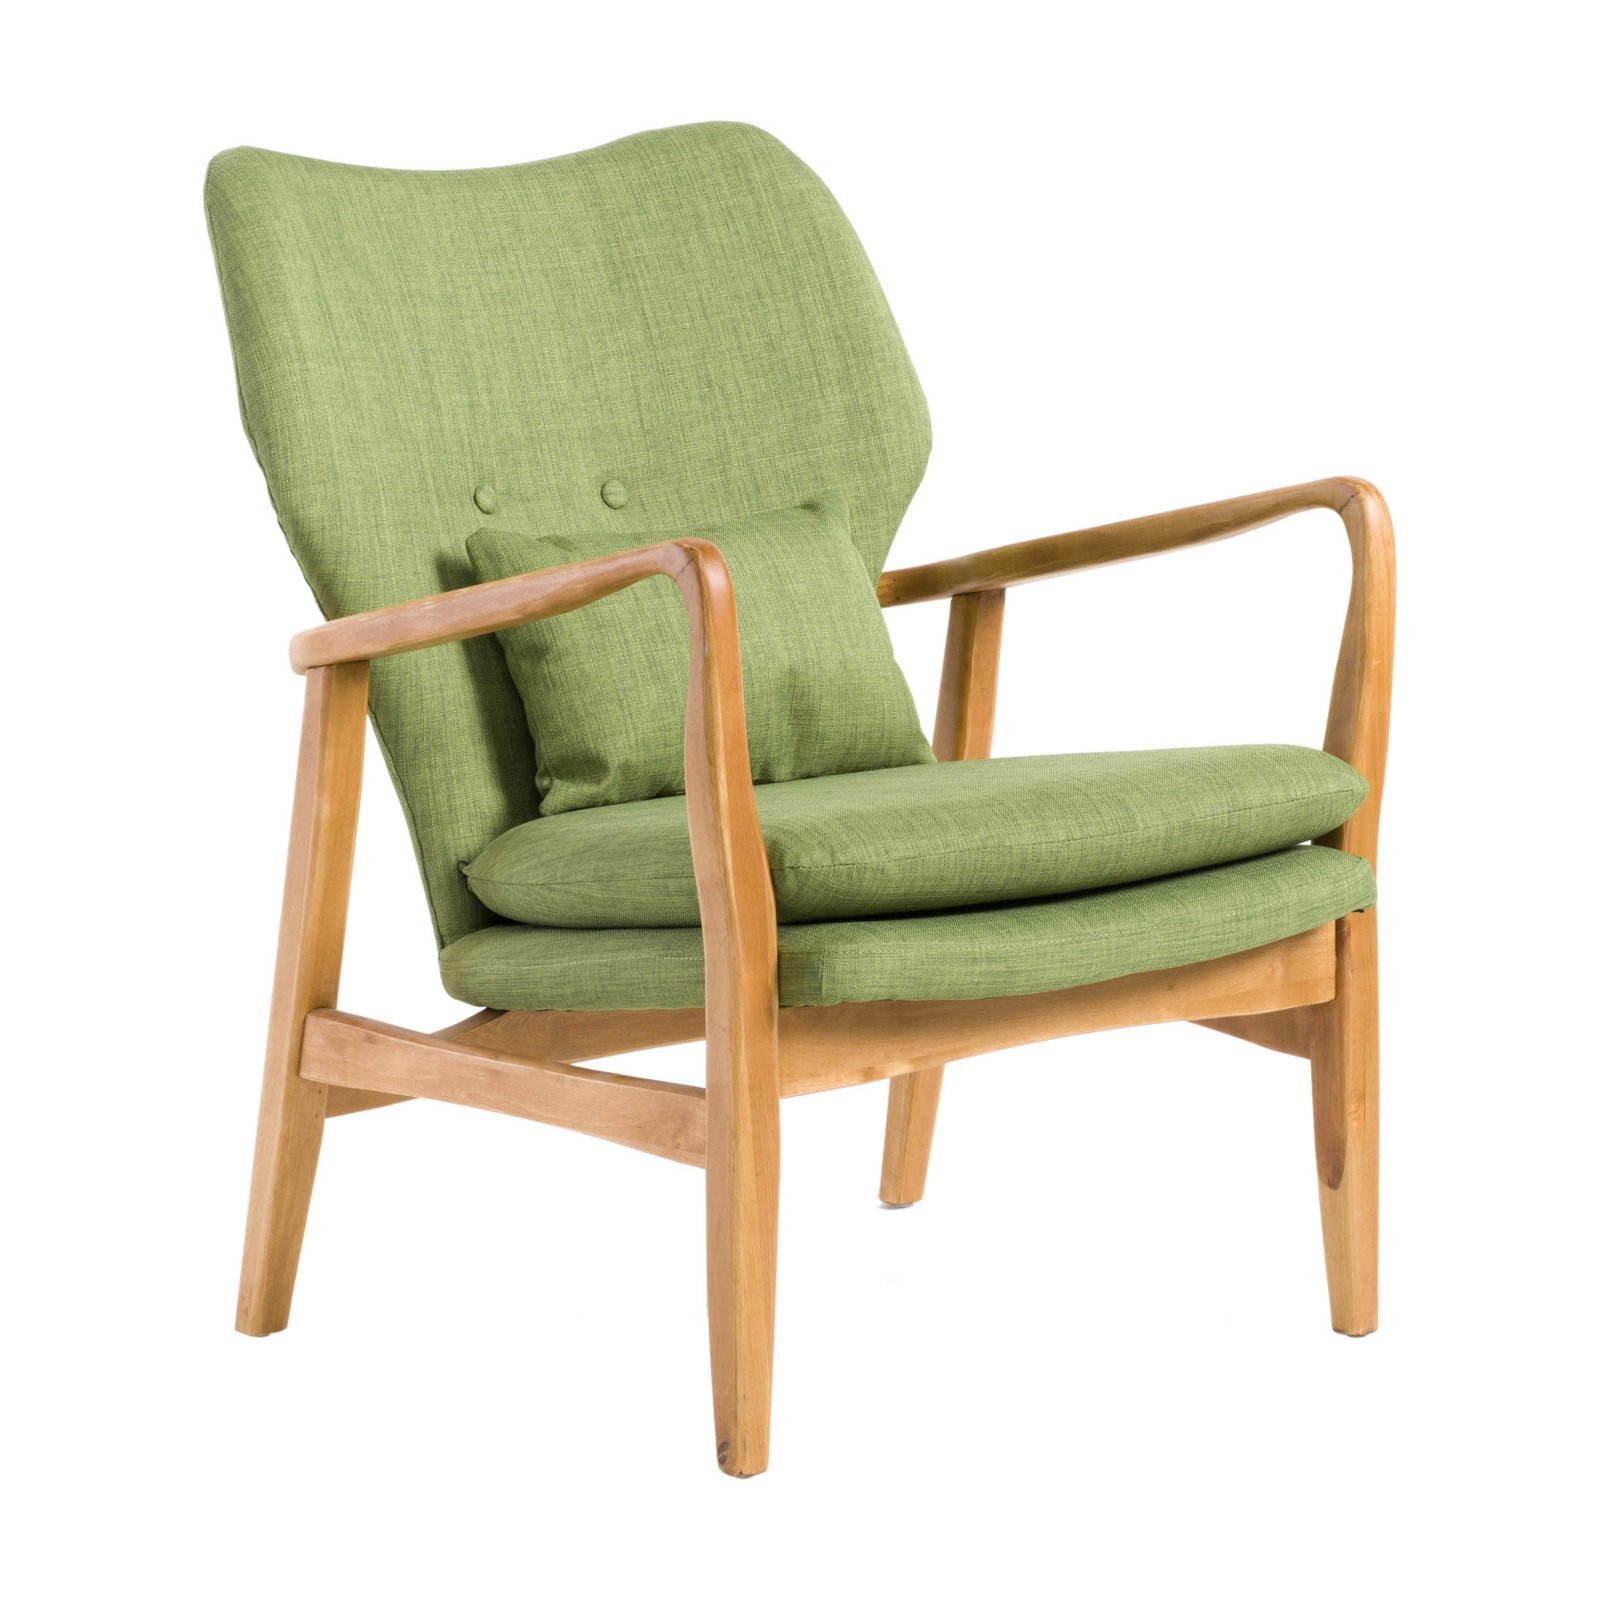 Bethany Wood Fabric Mid-Century Arm Accent Chair